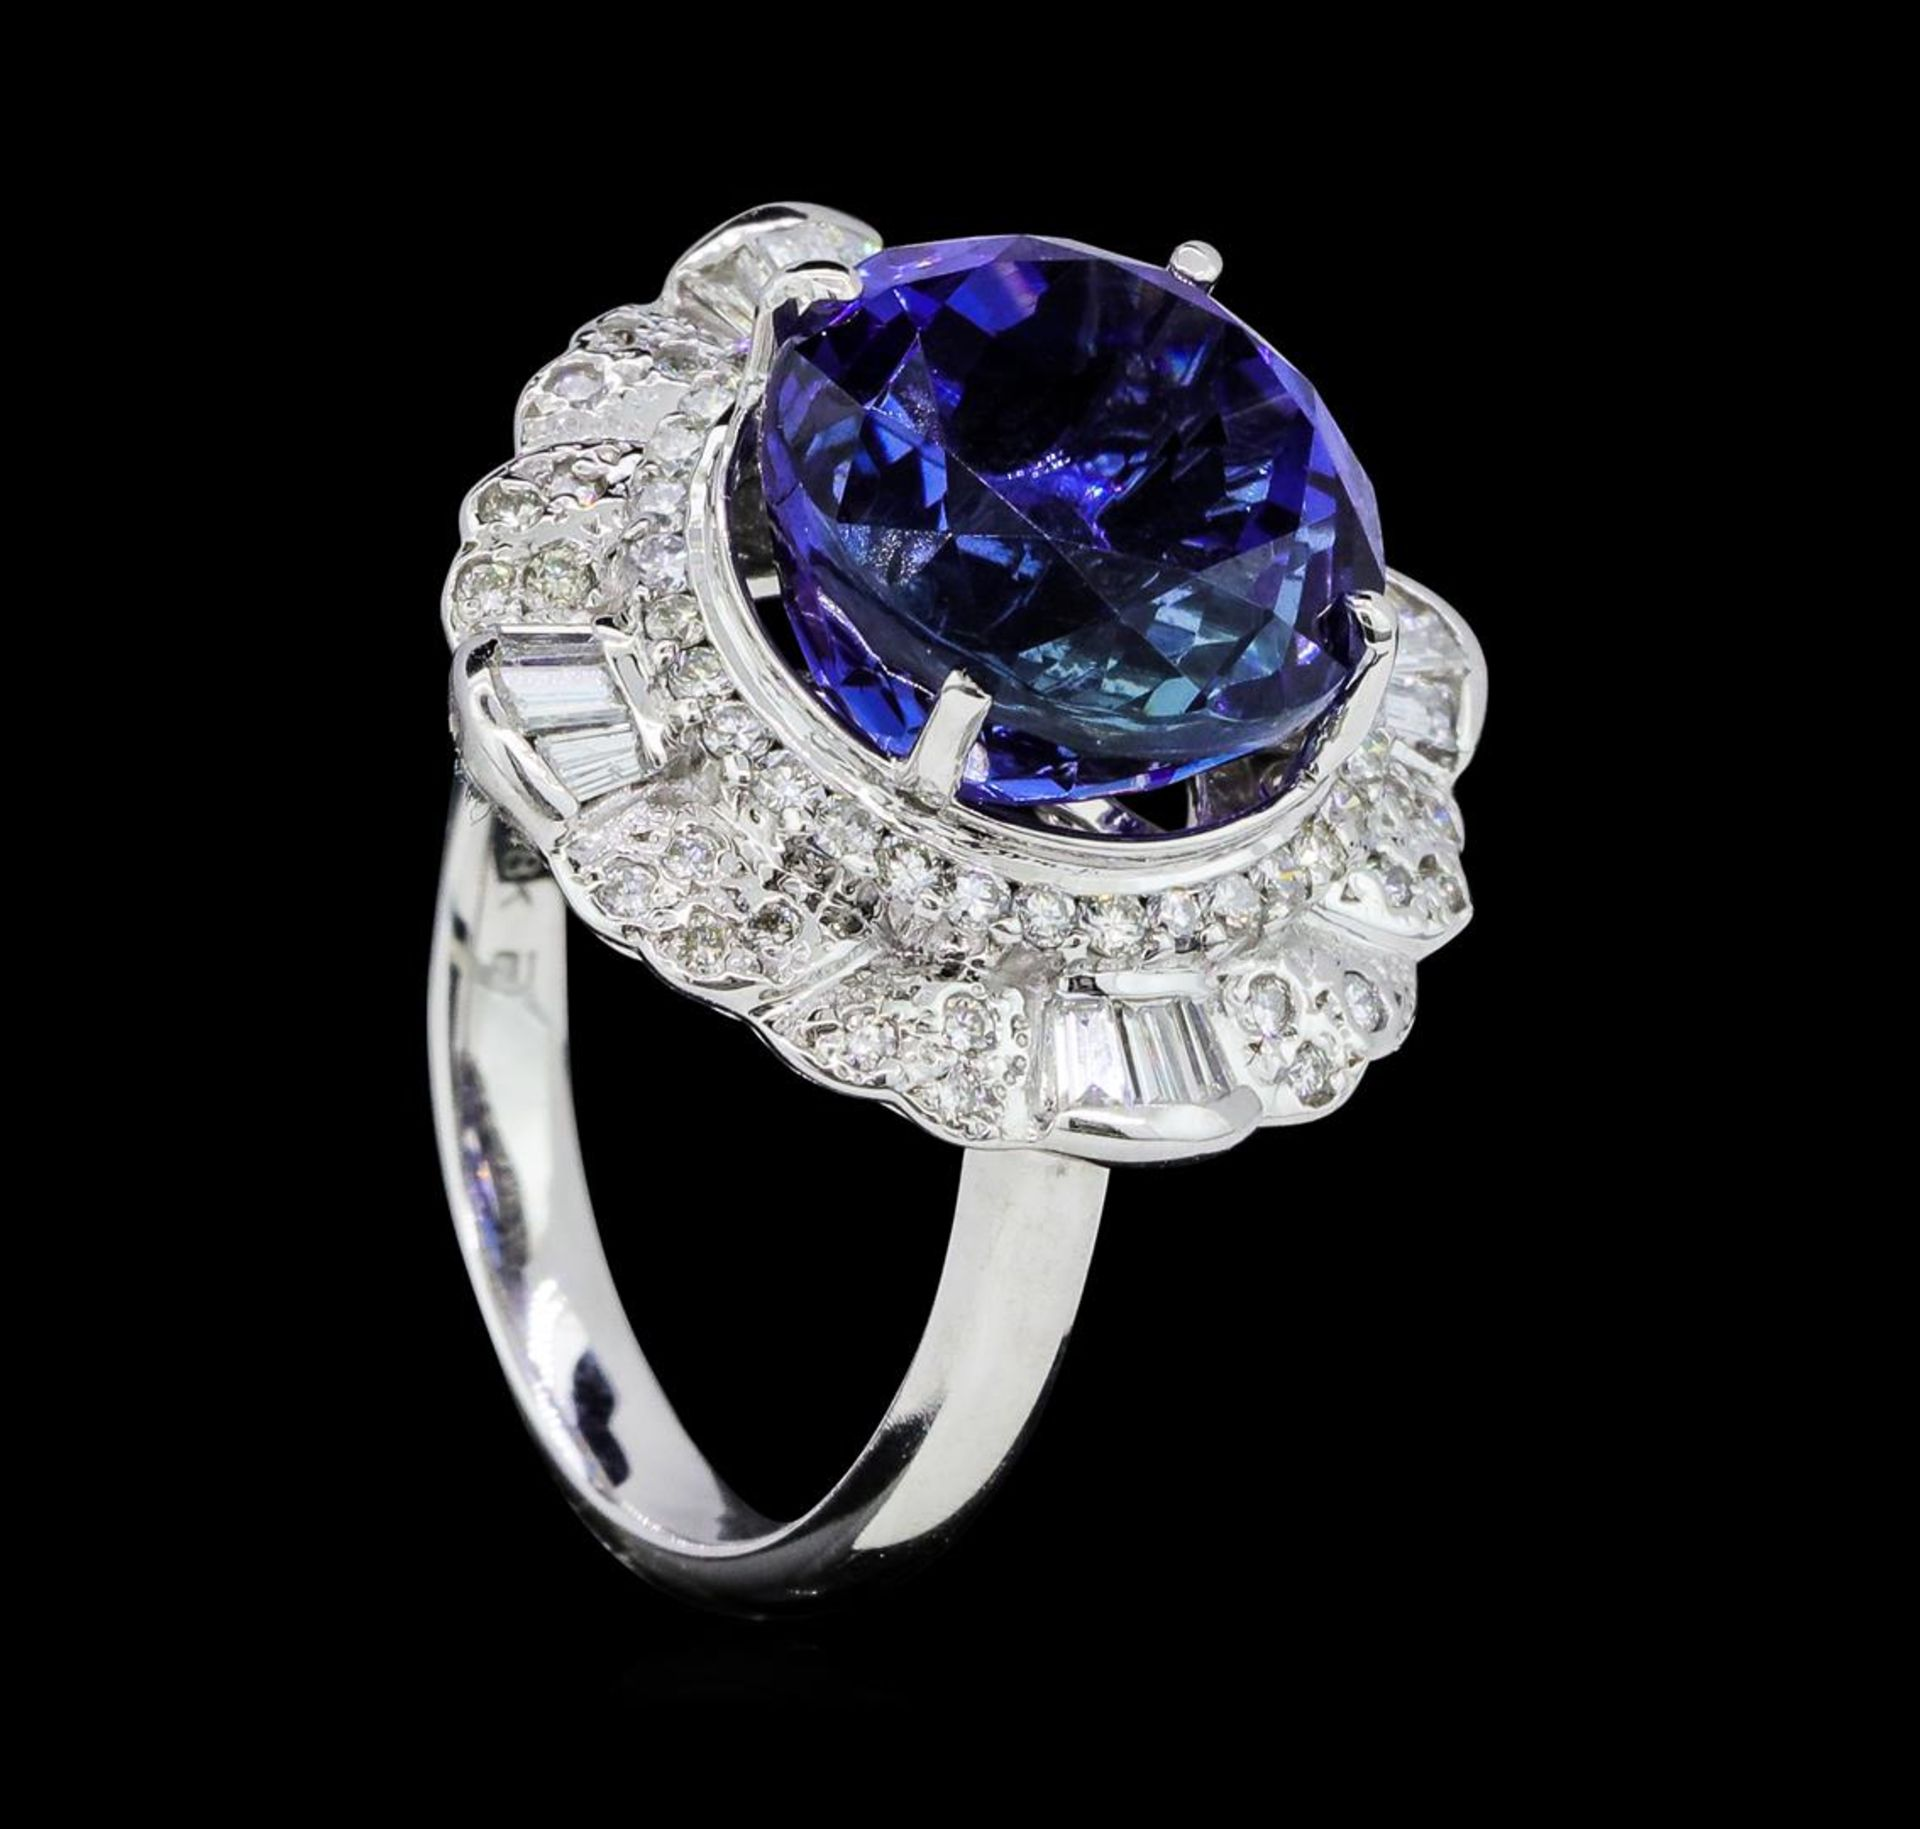 14.11 ctw Round Brilliant Tanzanite And Baguette Cut (Tapered) Diamond Ring - 18 - Image 4 of 5